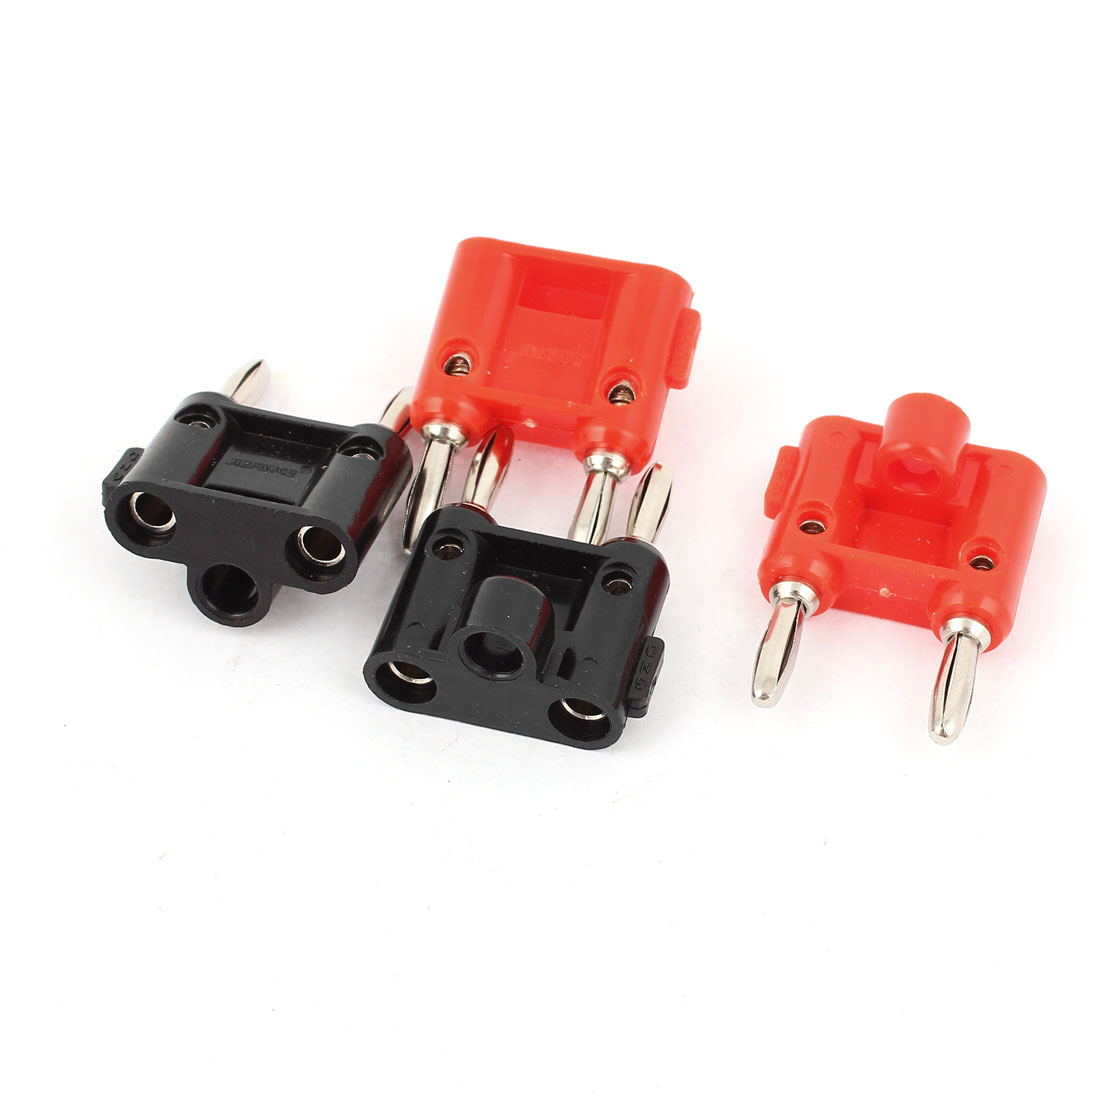 4pcs Speaker Audio Screw Type Dual Banana Binding Post Red Black